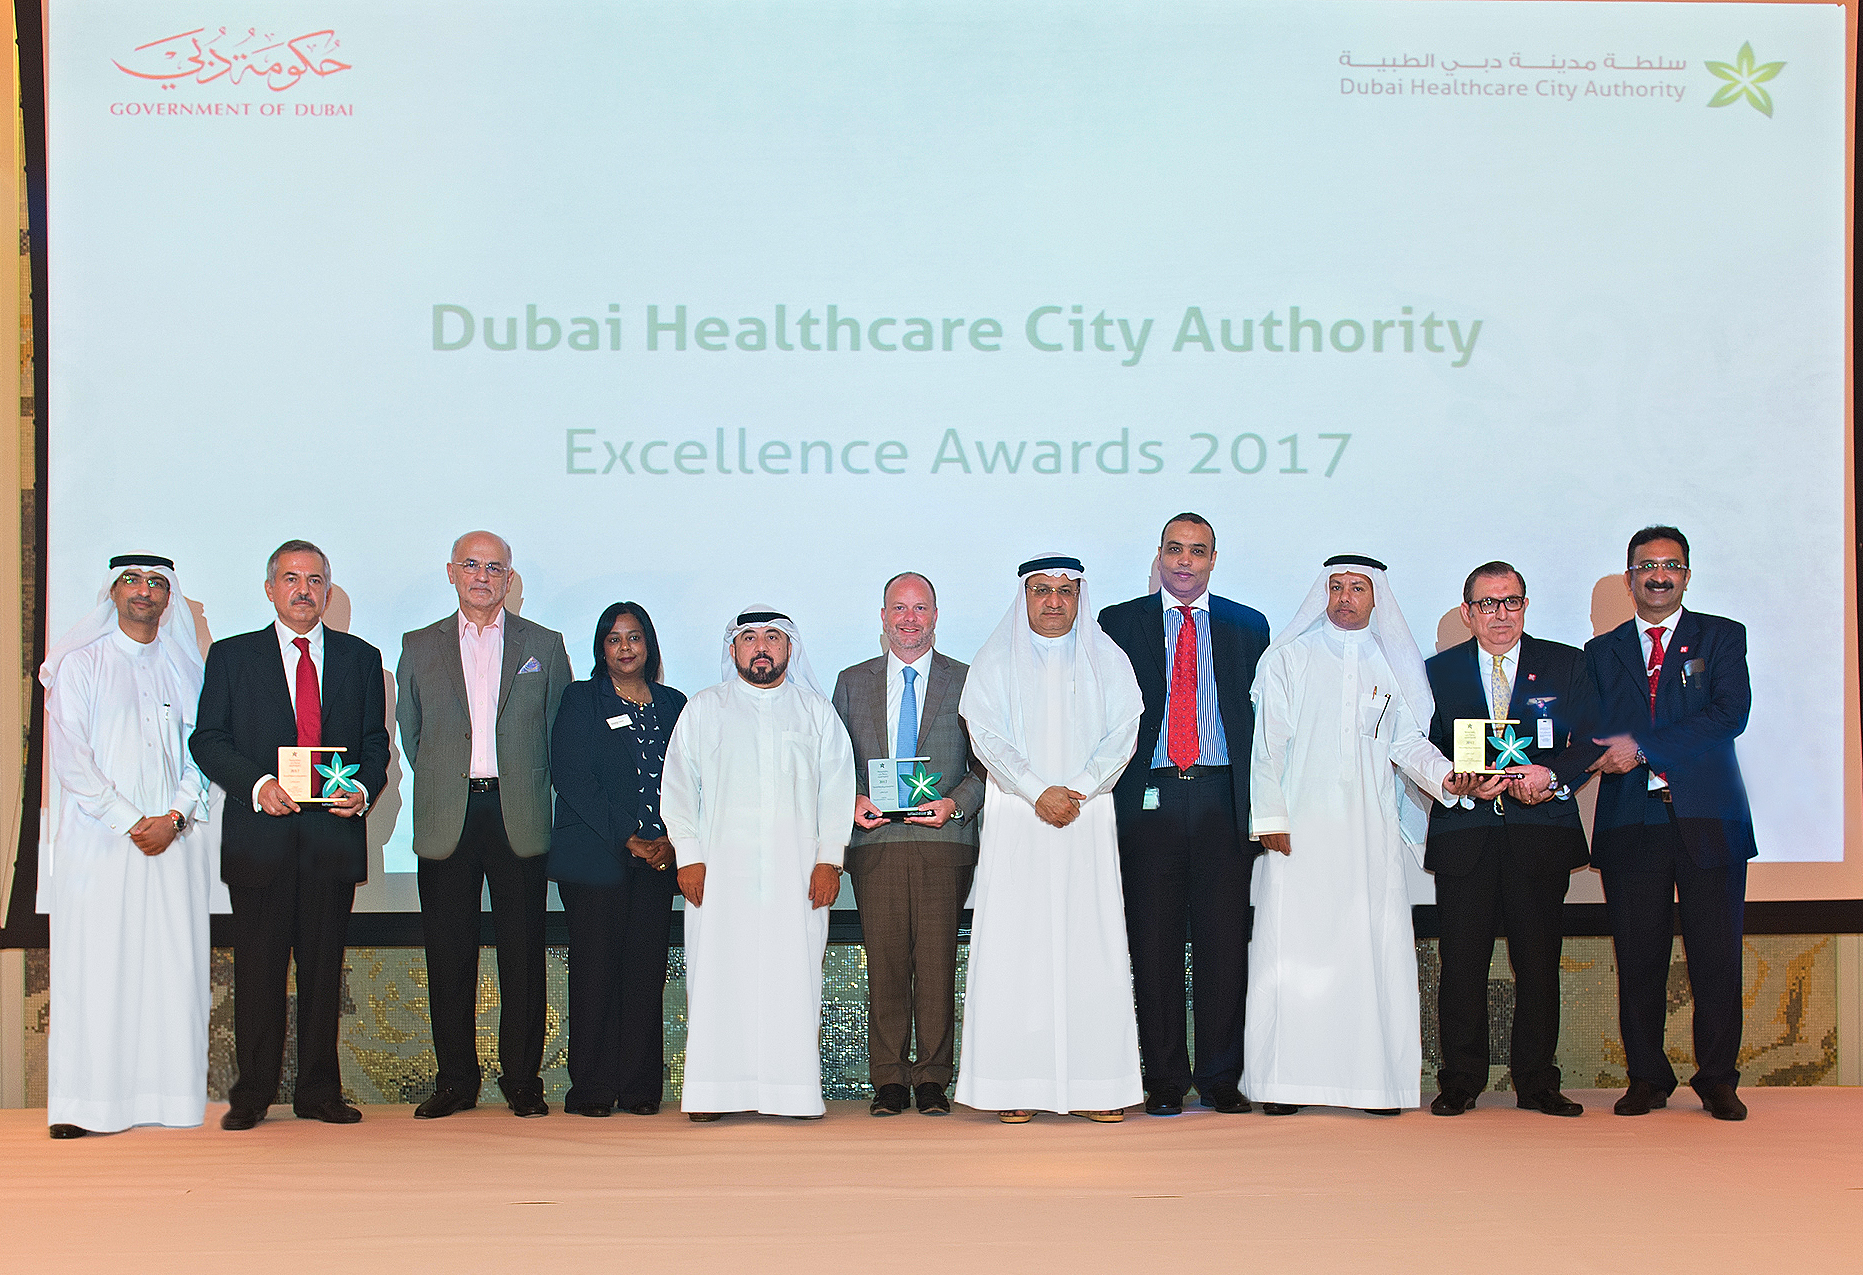 dubai healthcare city authority announces the winners of the first excellence awards, recognizing quality standards and innovative clinical initiatives within the free zone